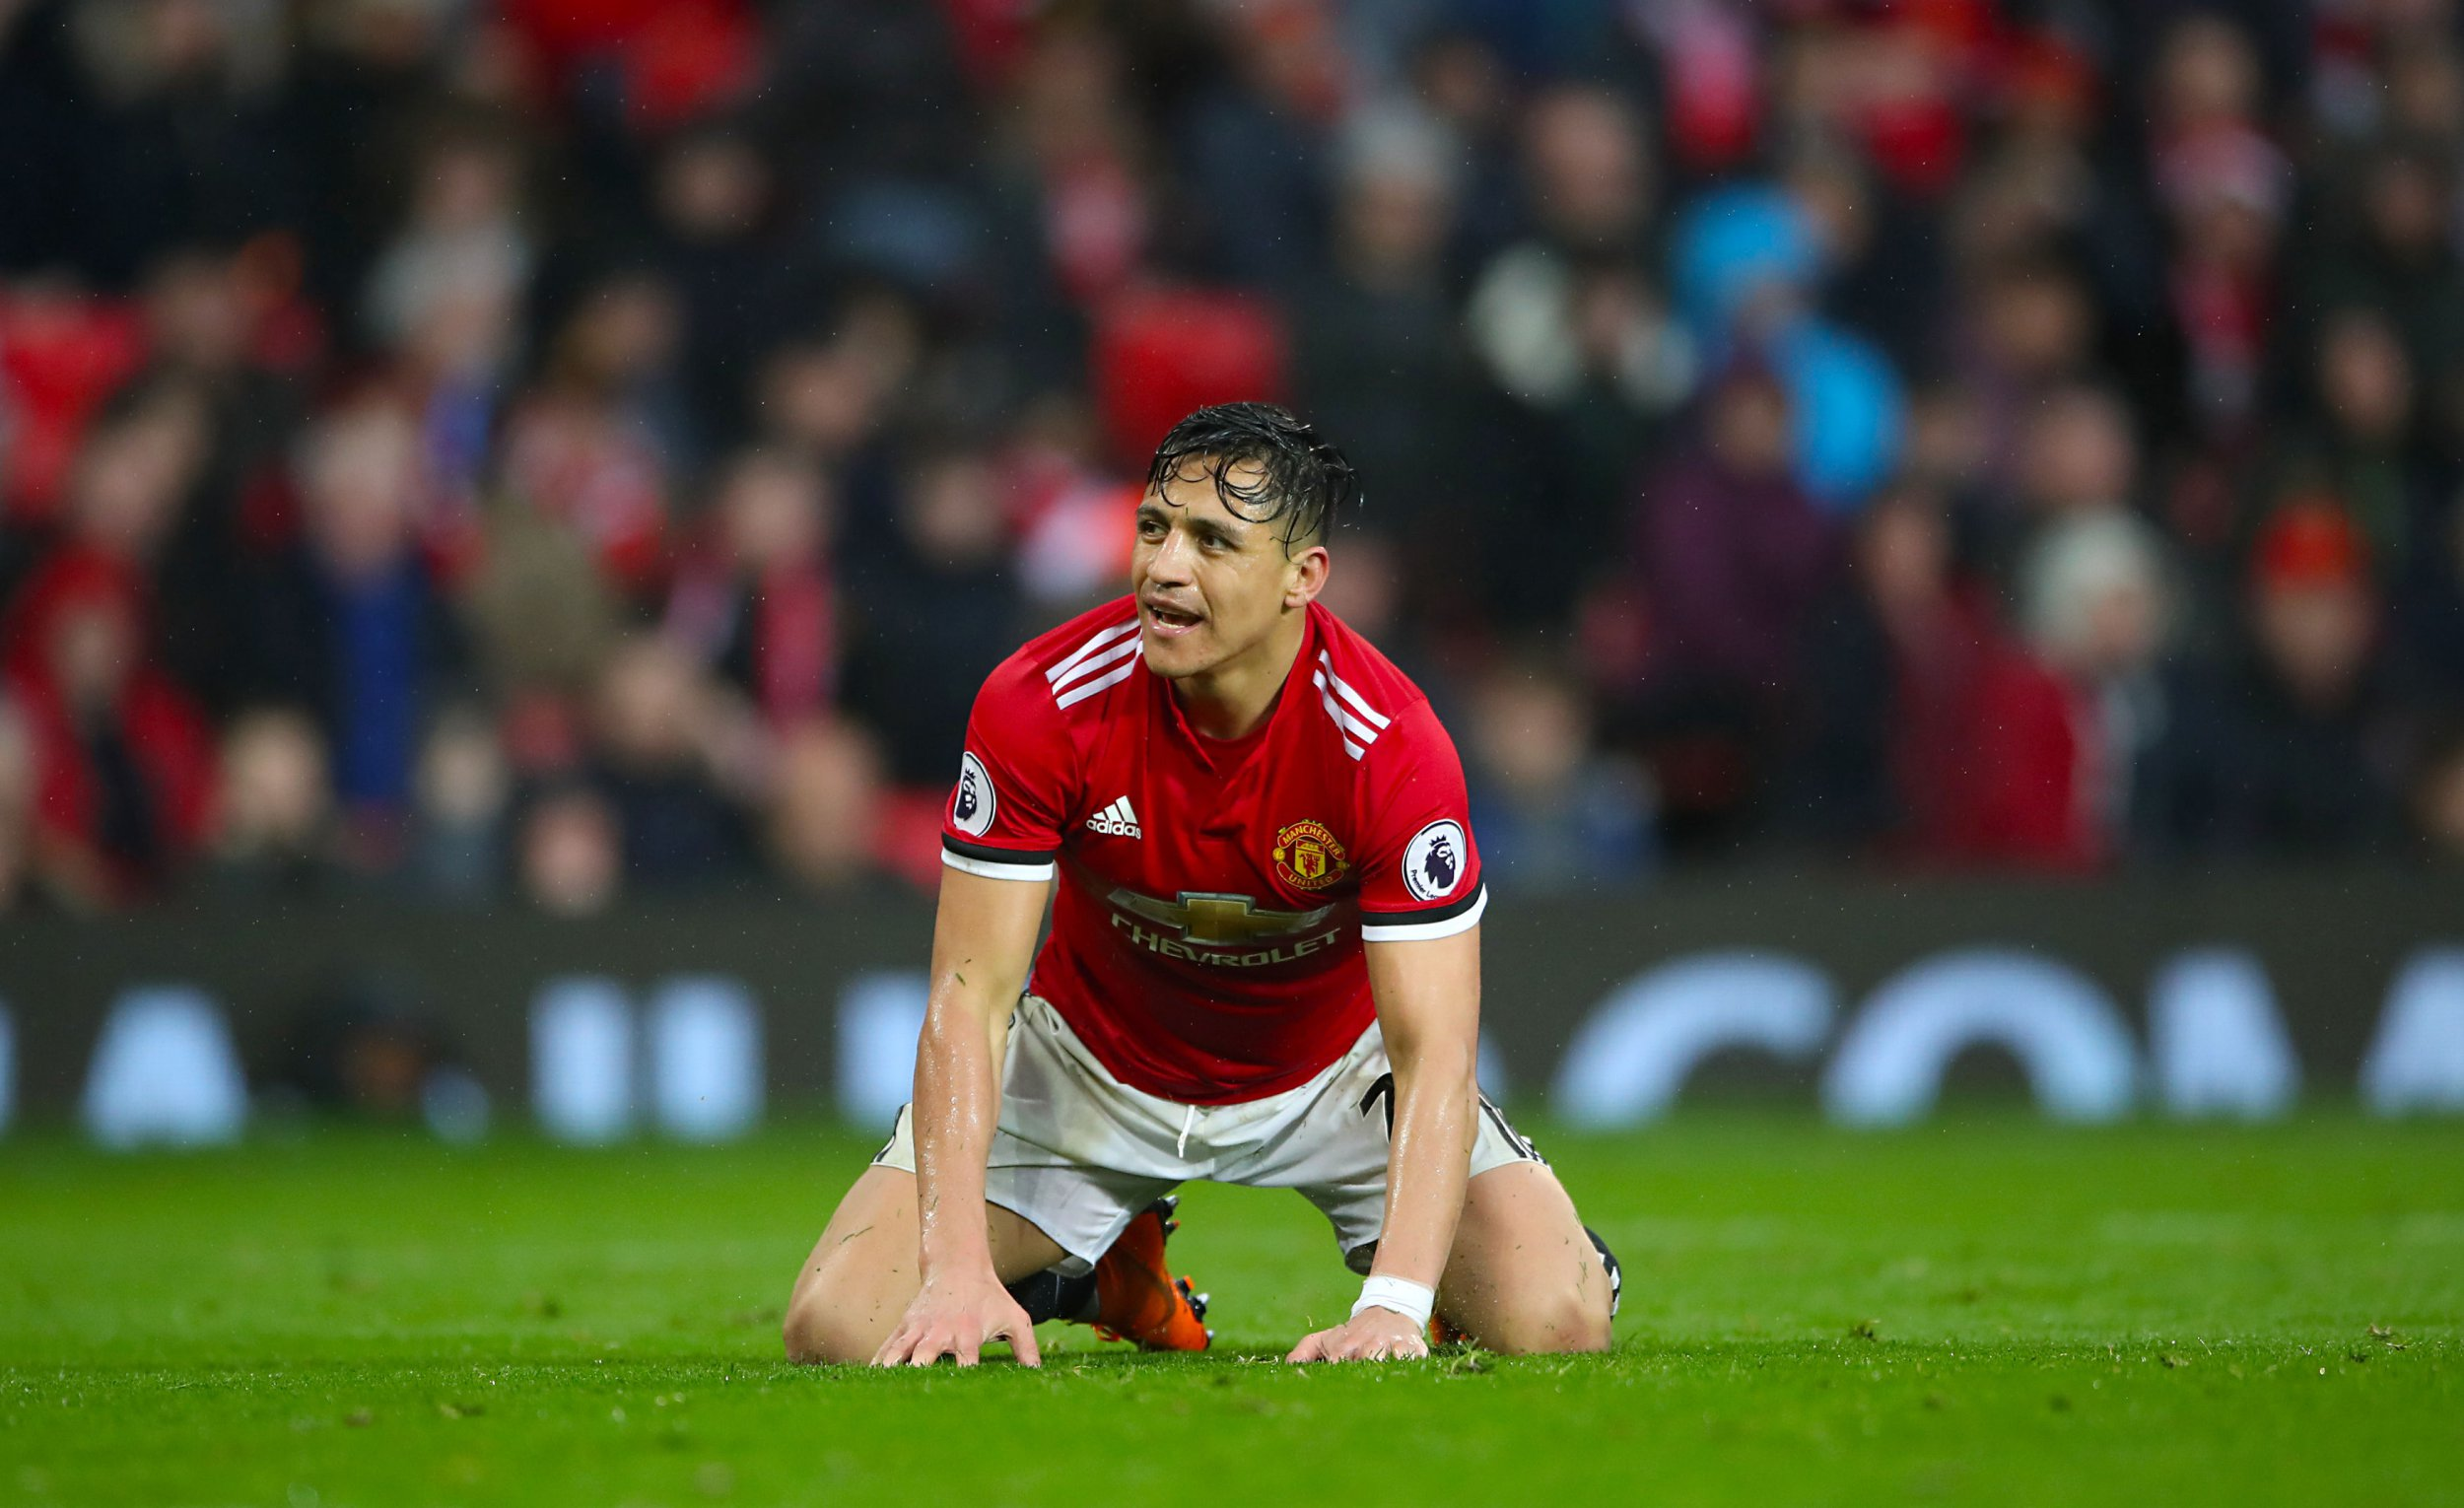 """Manchester United's Alexis Sanchez on the ground after a challenge during the Premier League match at Old Trafford, Manchester. PRESS ASSOCIATION Photo. Picture date: Sunday April 15, 2018. See PA story SOCCER Man Utd. Photo credit should read: Nick Potts/PA Wire. RESTRICTIONS: EDITORIAL USE ONLY No use with unauthorised audio, video, data, fixture lists, club/league logos or """"live"""" services. Online in-match use limited to 75 images, no video emulation. No use in betting, games or single club/league/player publications."""